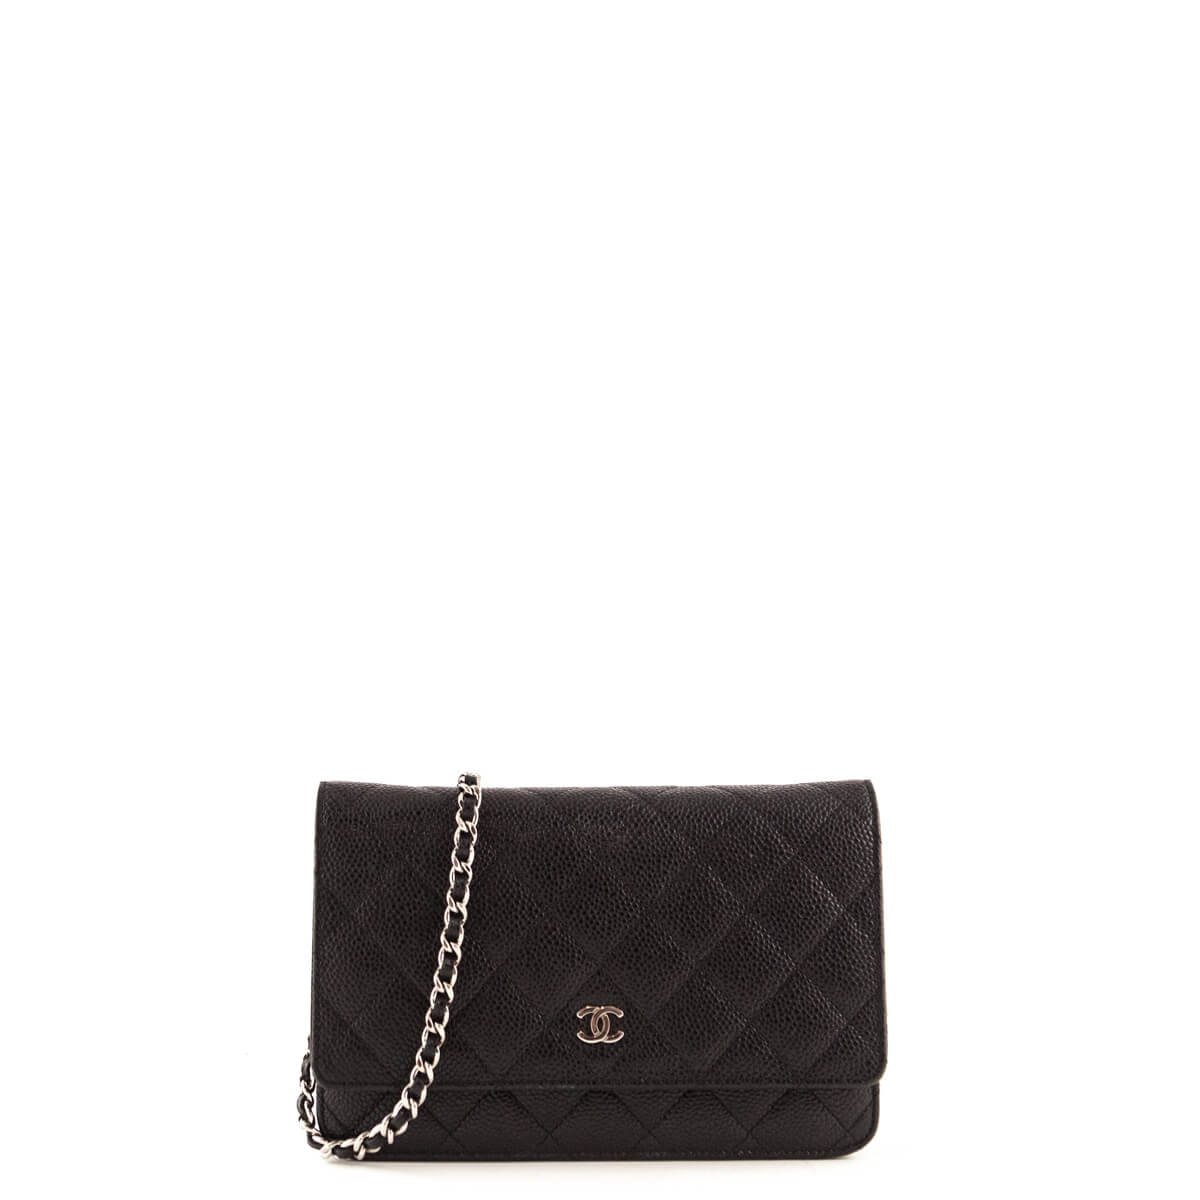 18fa8d6ef93bd1 Chanel Black Caviar Wallet on Chain SHW - LOVE that BAG - Preowned  Authentic Designer Handbags ...